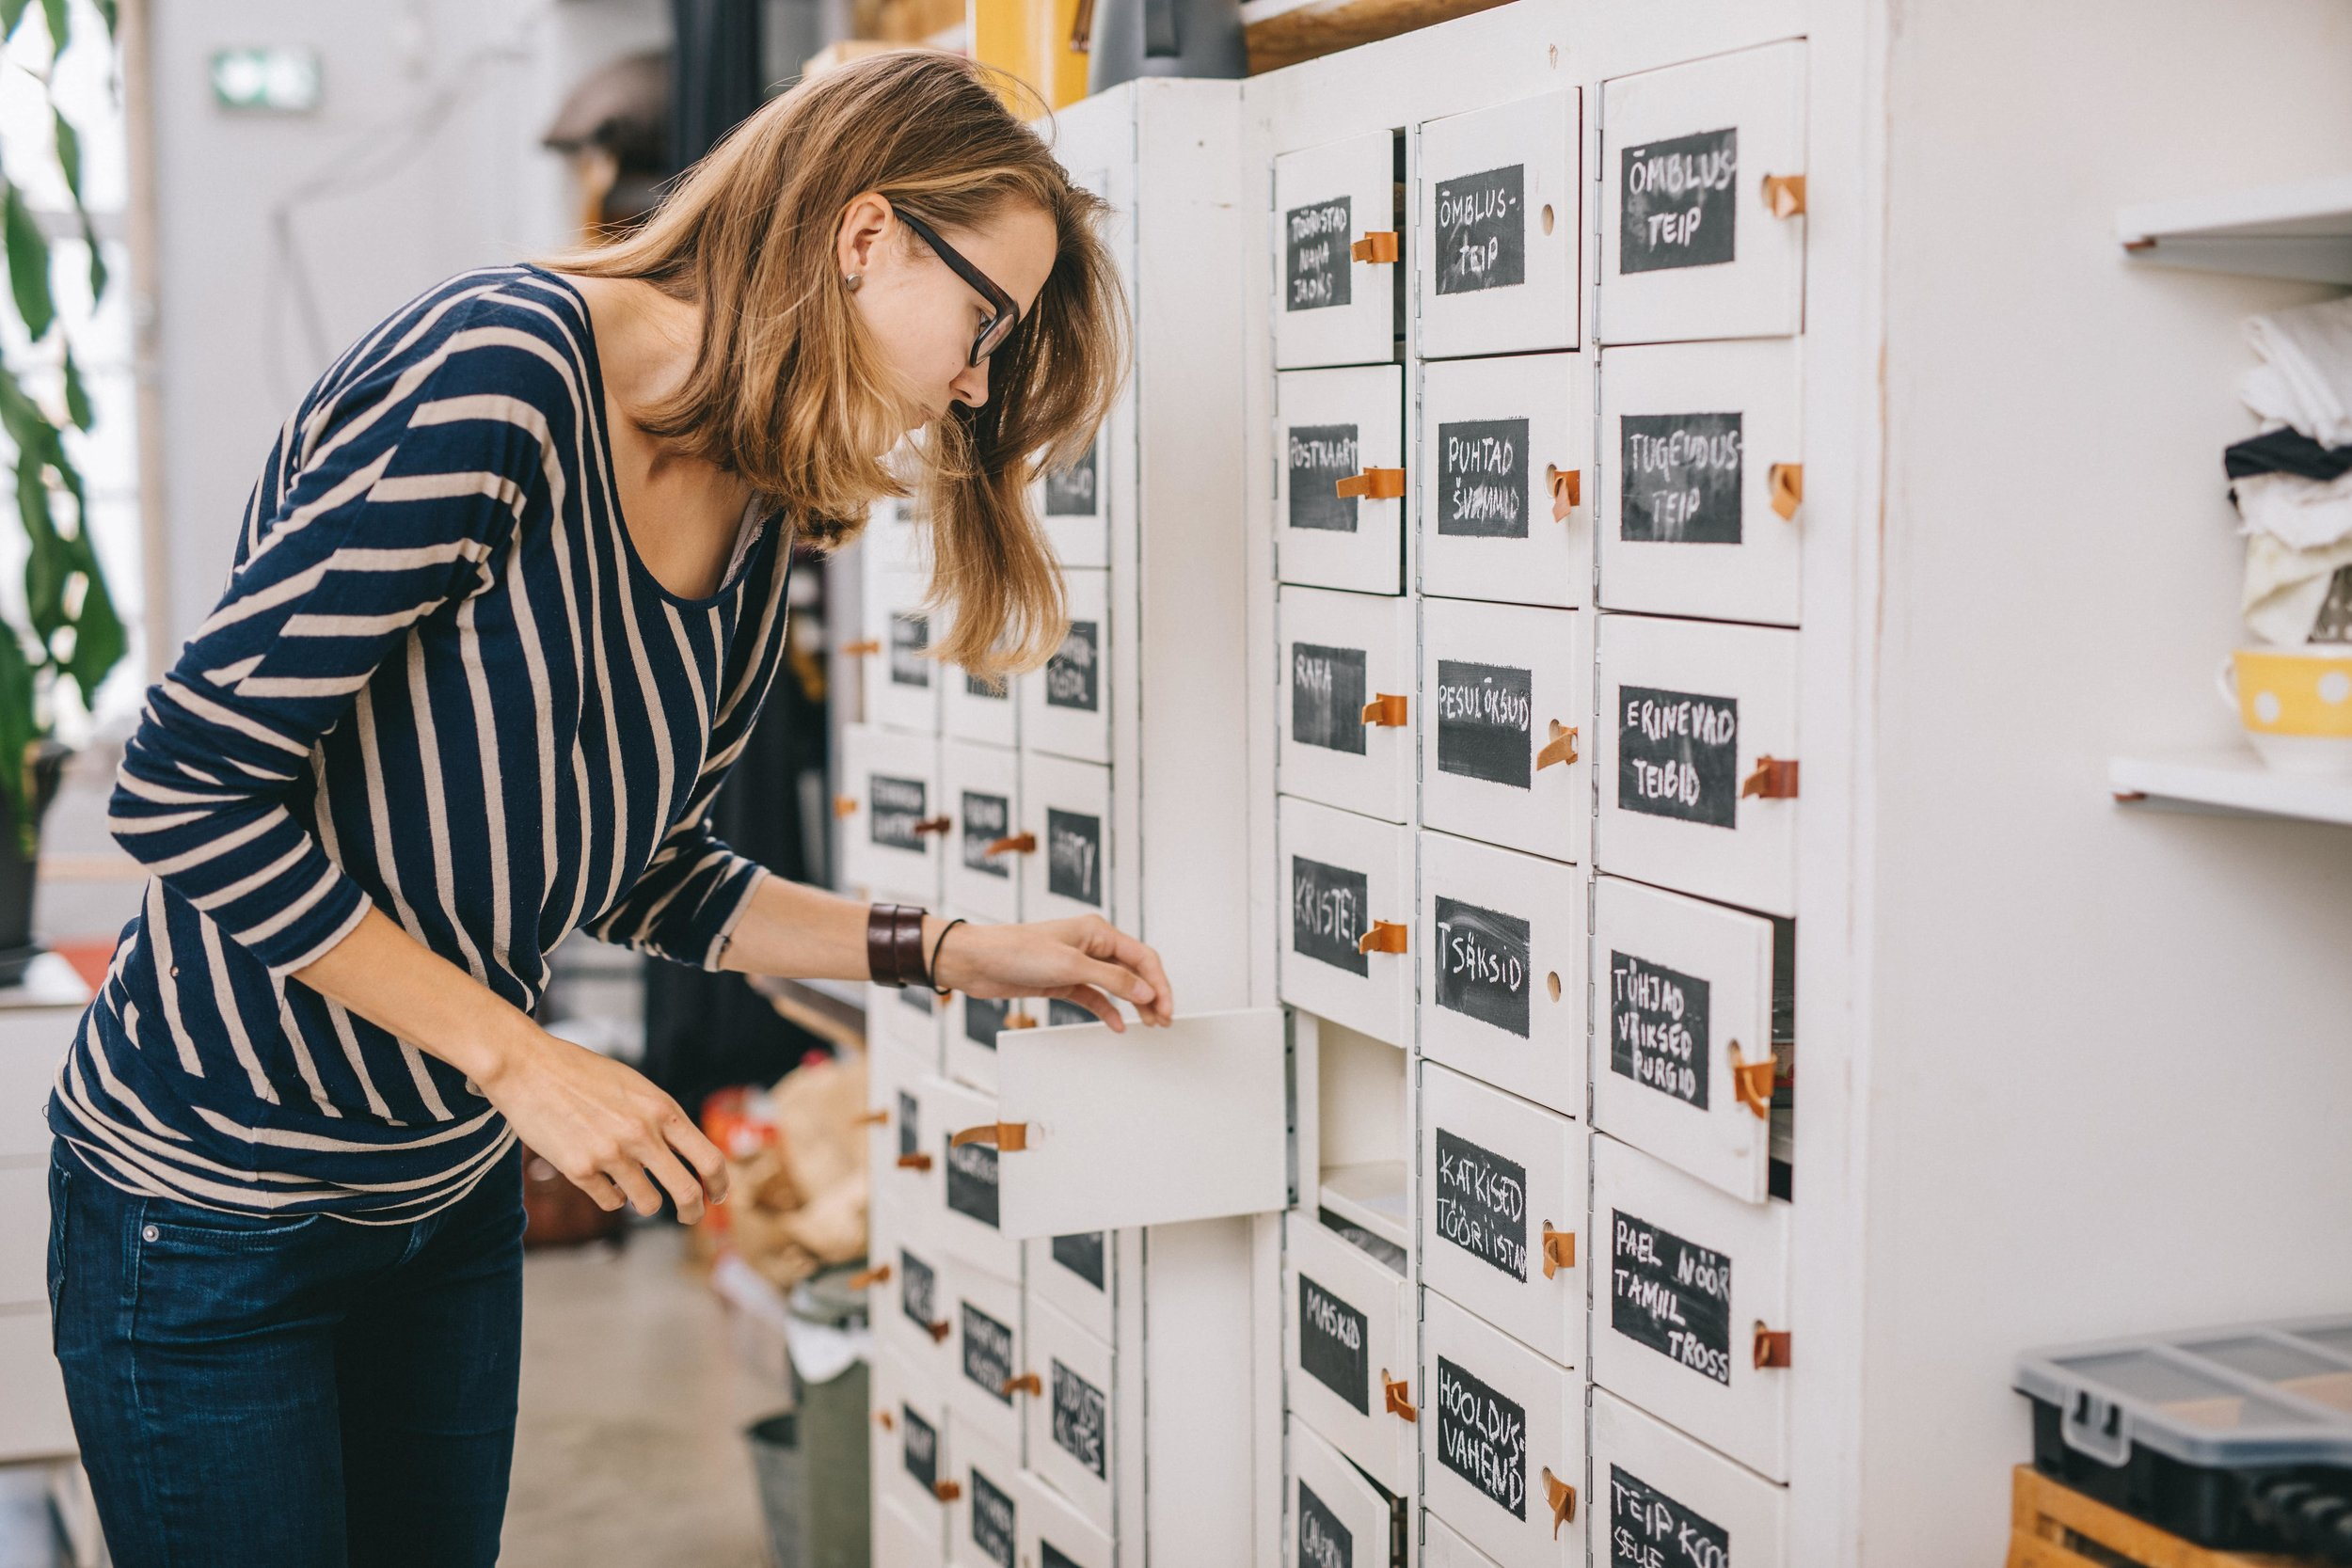 Modern manufacturers like Stella Soomlais have been battling stock replenishment with spreadsheets for a long time. Thankfully, the dawn of Smart Workshop Software has automated inventory management enough to allow manufacturers to give up the ancient Excel ways and focus on their products and customers instead.